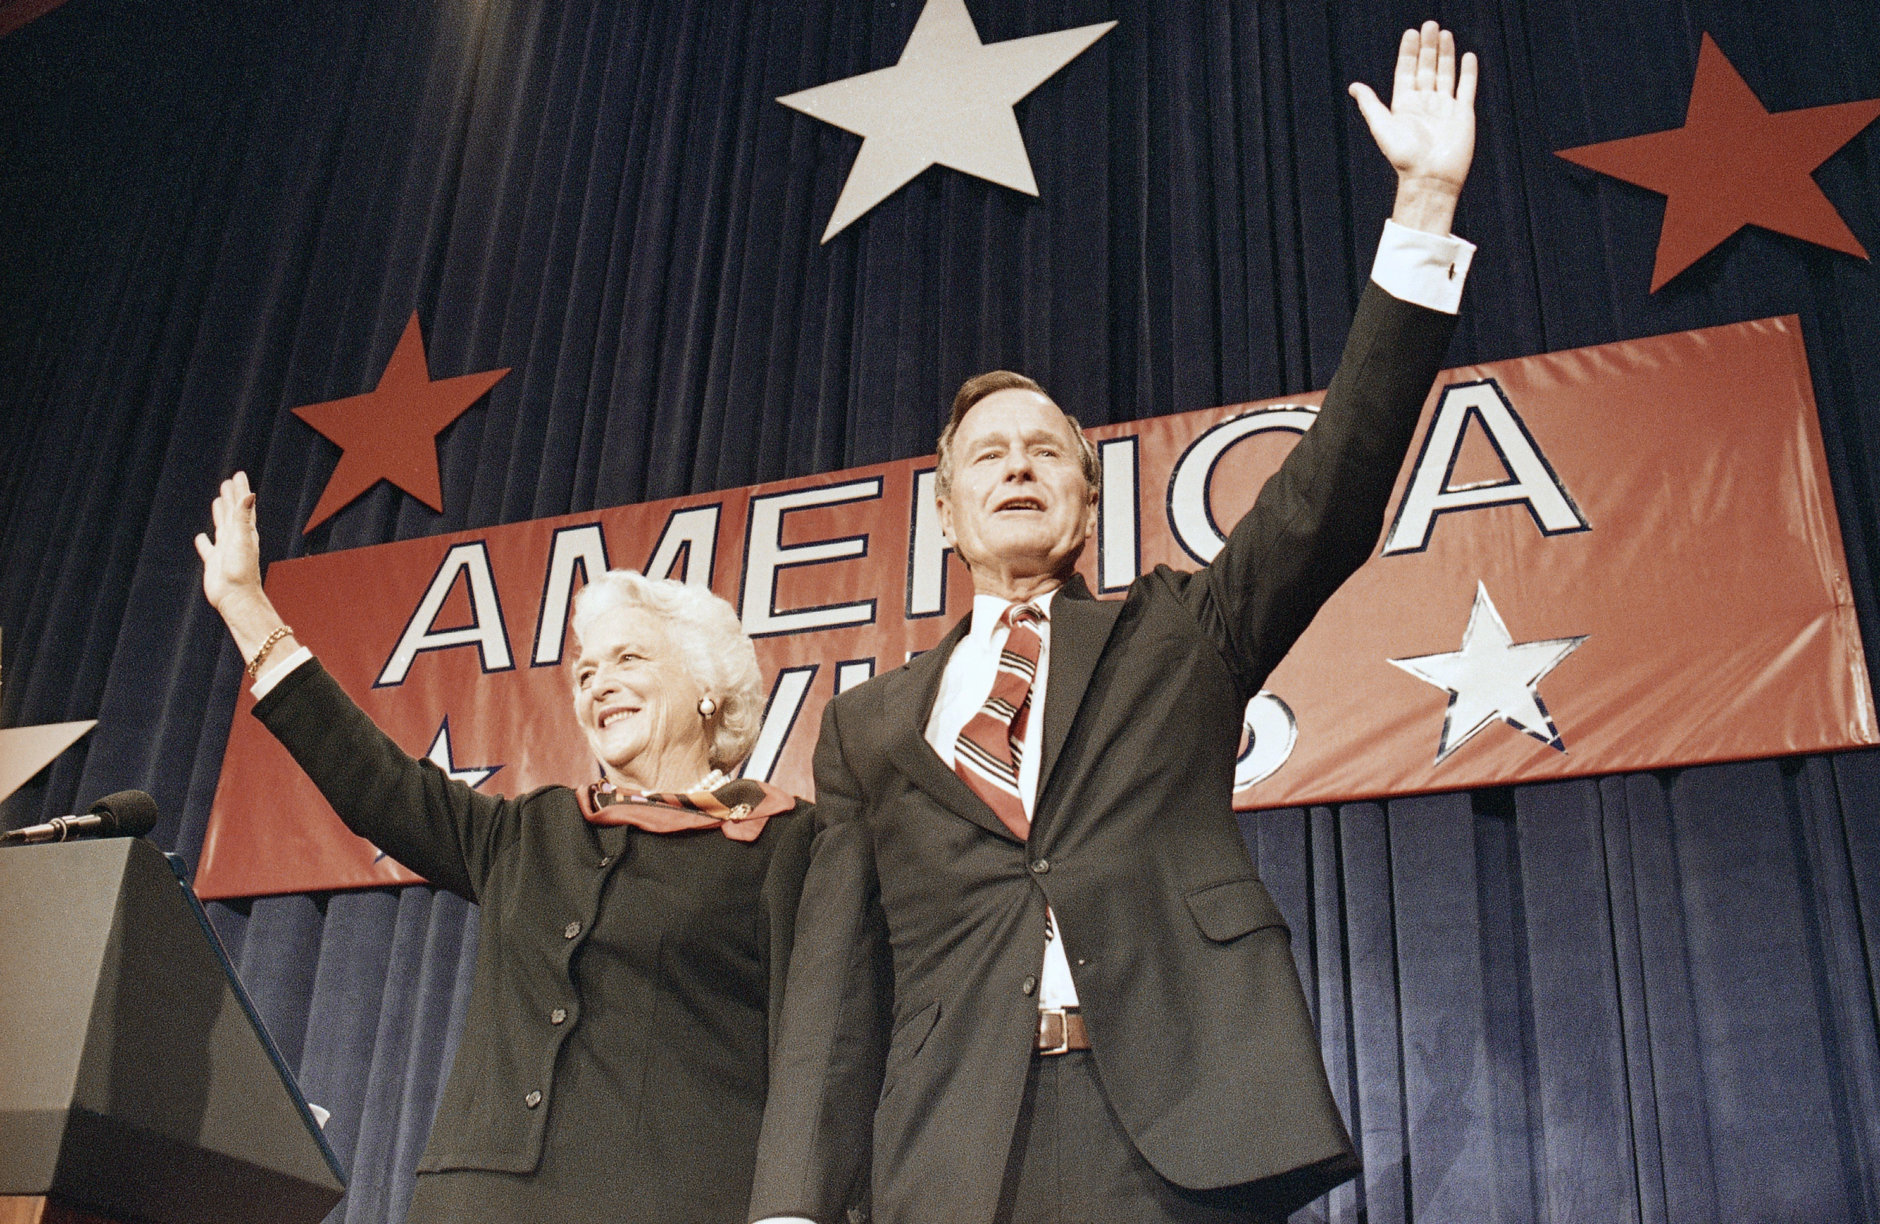 President-elect George H.W. Bush, right, and his wife Barbara Bush, wave to the crowd at a victory celebration rally, Tuesday, Nov. 8, 1988, Houston, Tex. (AP Photo/J. Scott Applewhite)